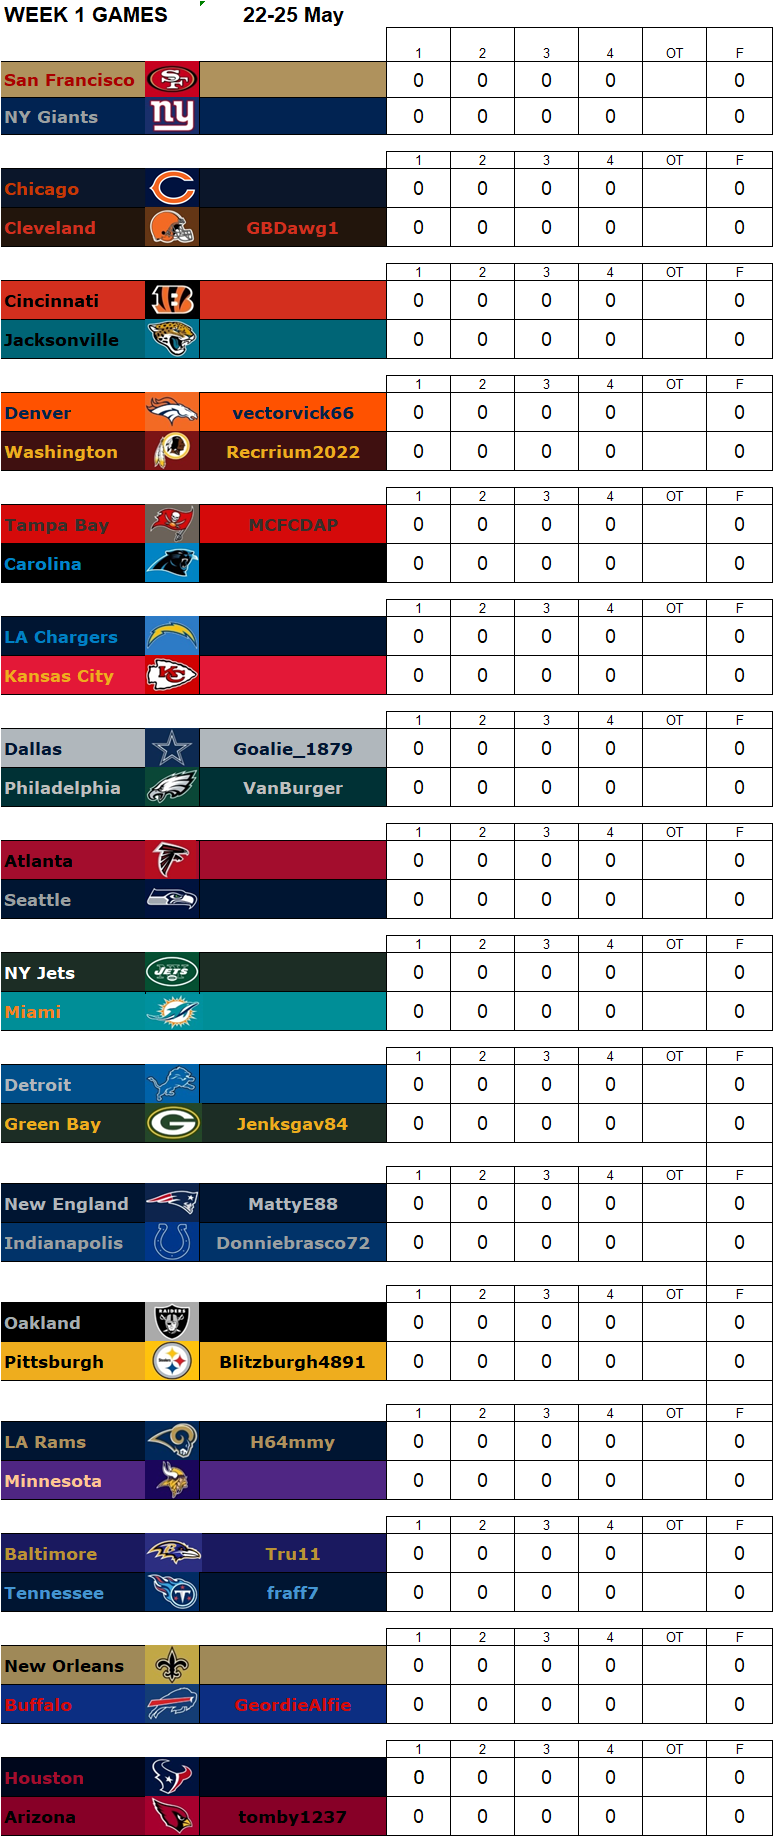 Week 1 Regular Season Matchups, 22-25 May W1g13